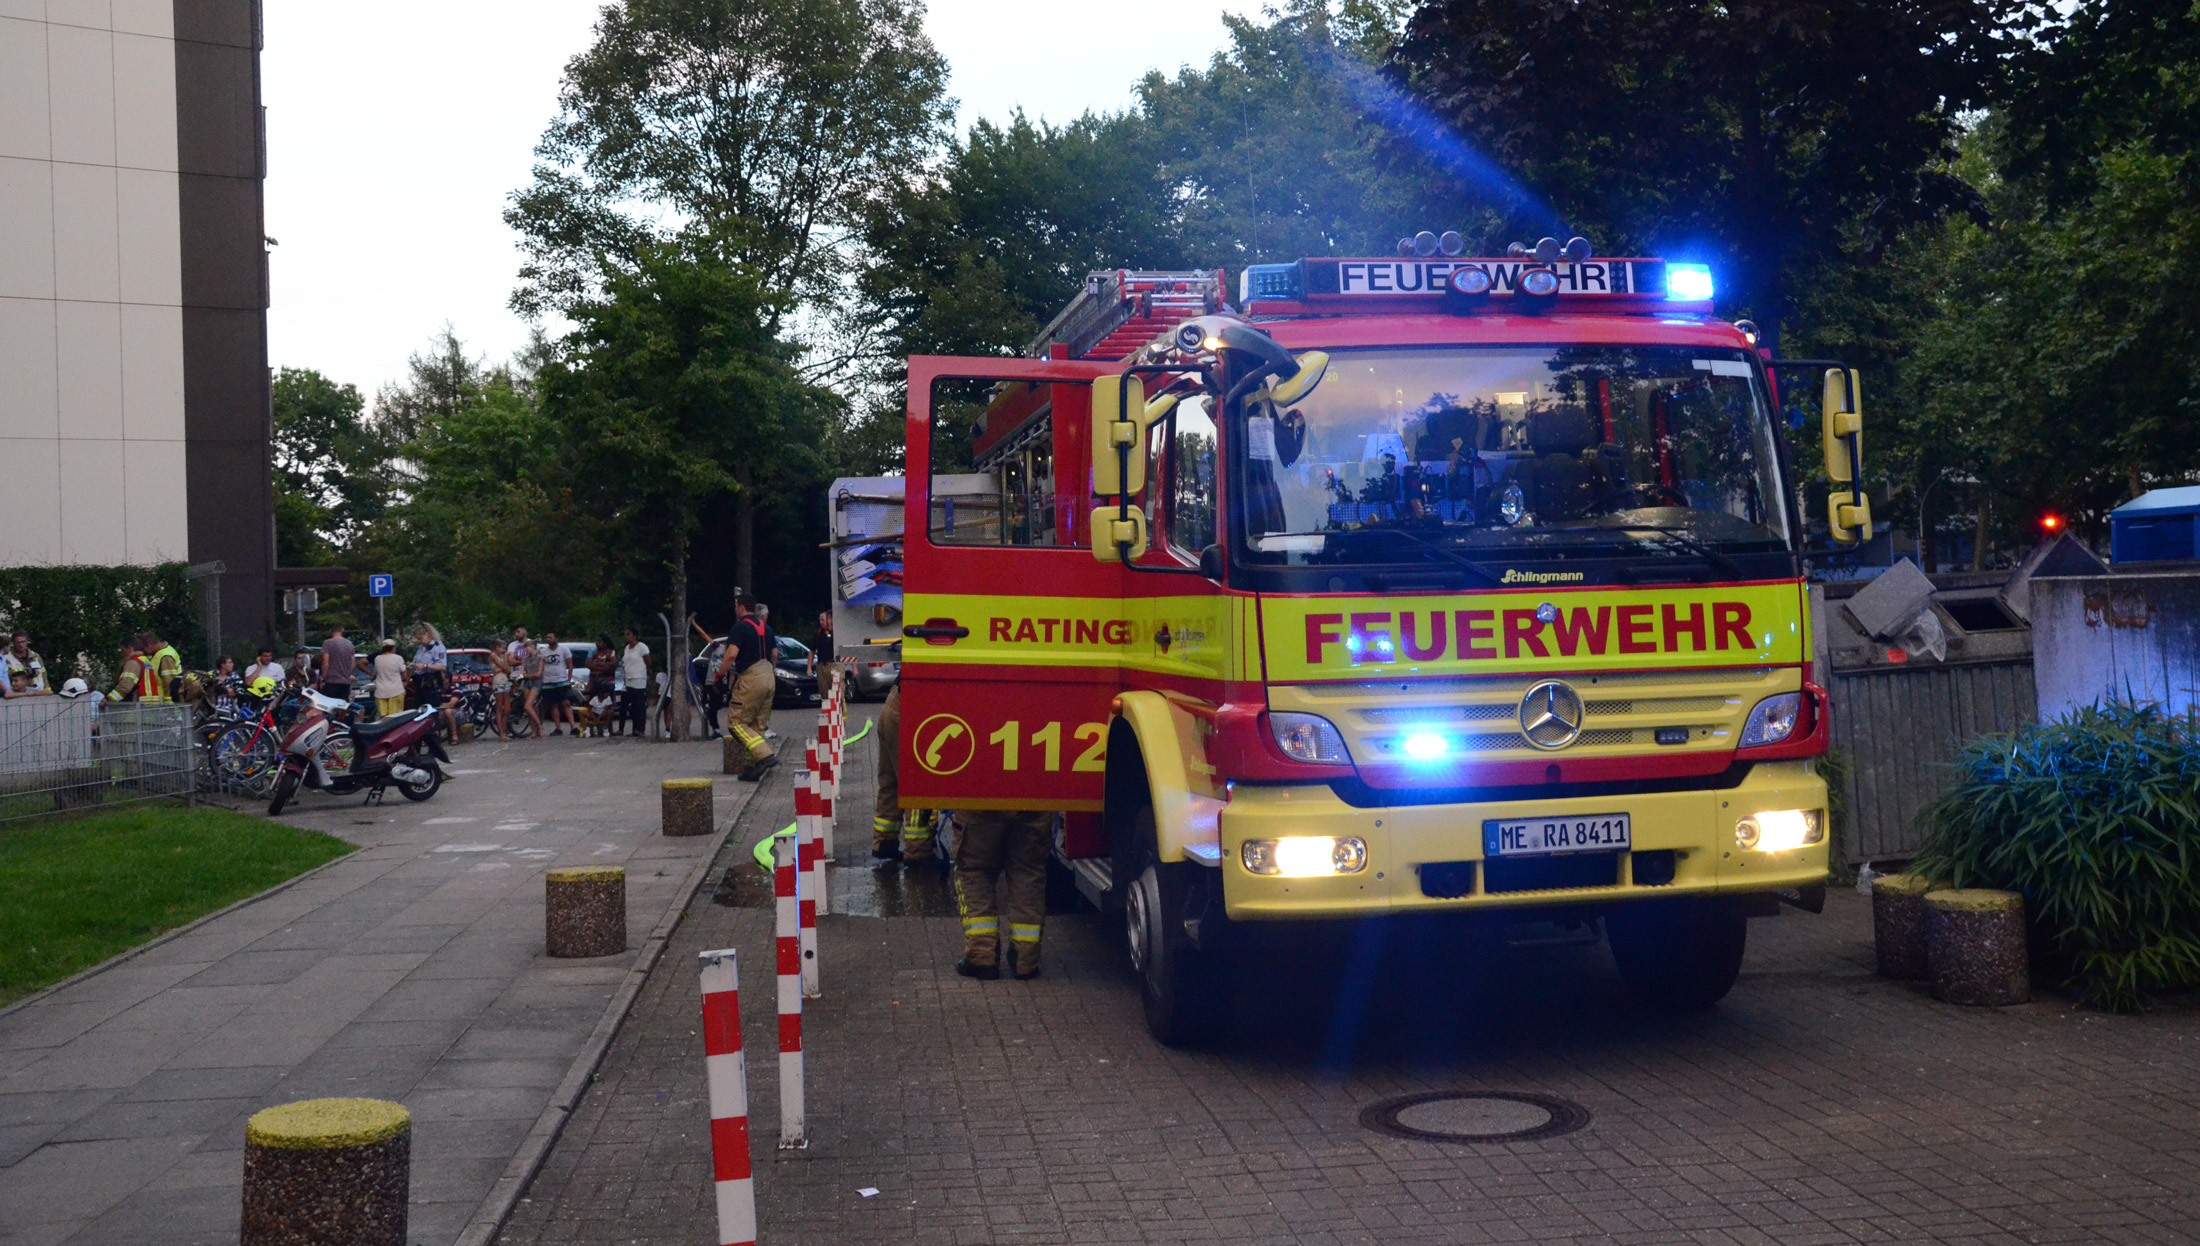 22.08.2015 Kellerbrand Ratingen-West